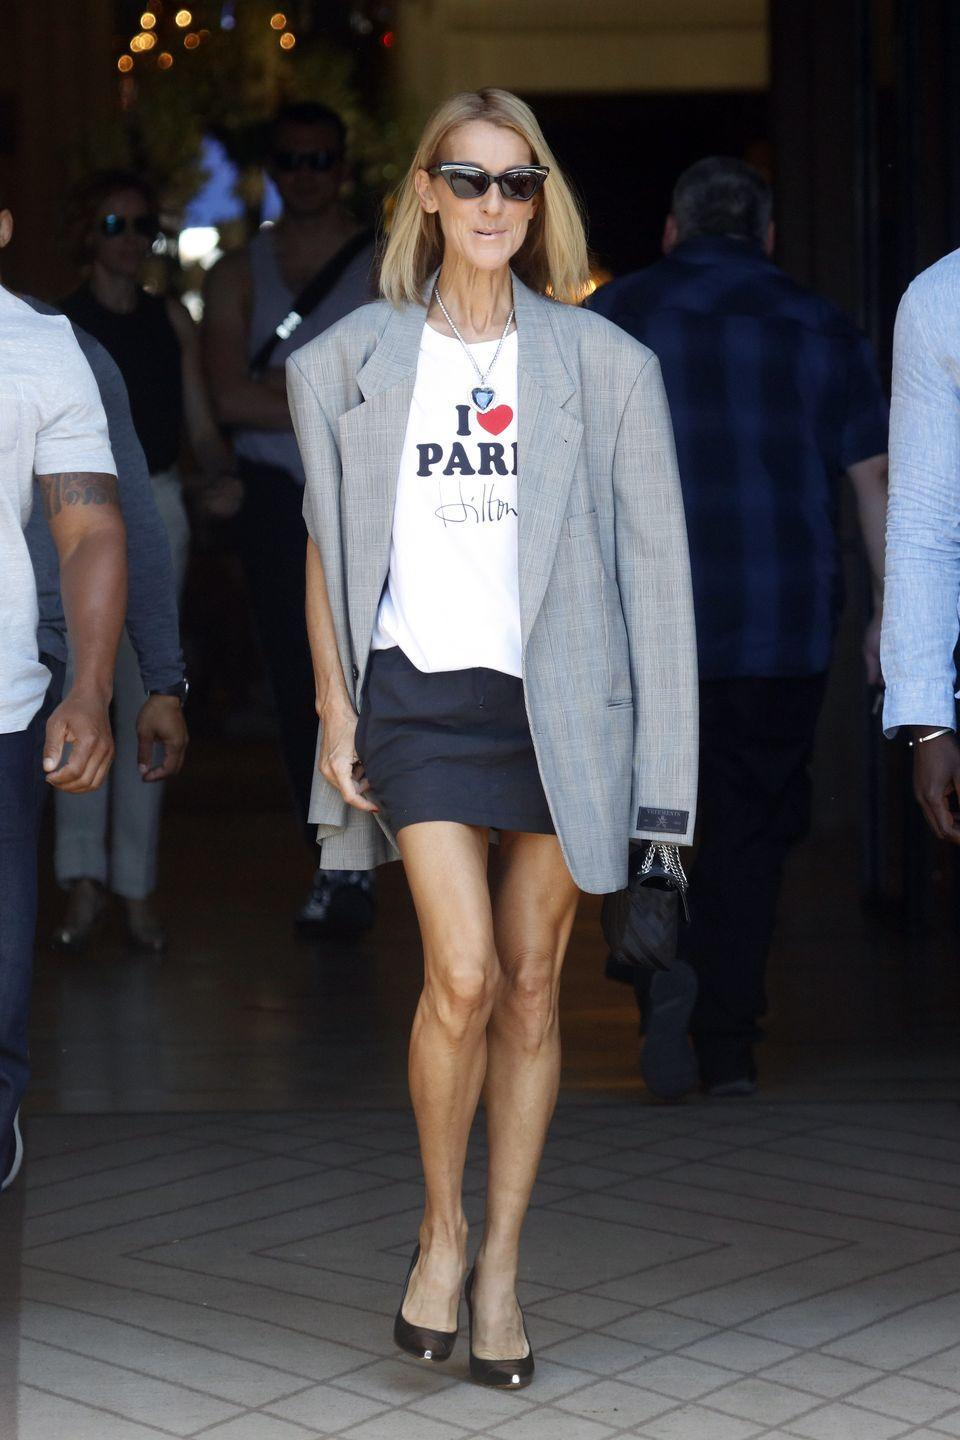 """<p>For this cheeky look, Dion paired an """"I Love Paris Hilton"""" tee with a miniskirt, oversized blazer, and simple pumps. And if you look closely, you'll see that she's wearing the Heart of the Ocean necklace from <em>Titanic. </em>I-con-ic.</p>"""